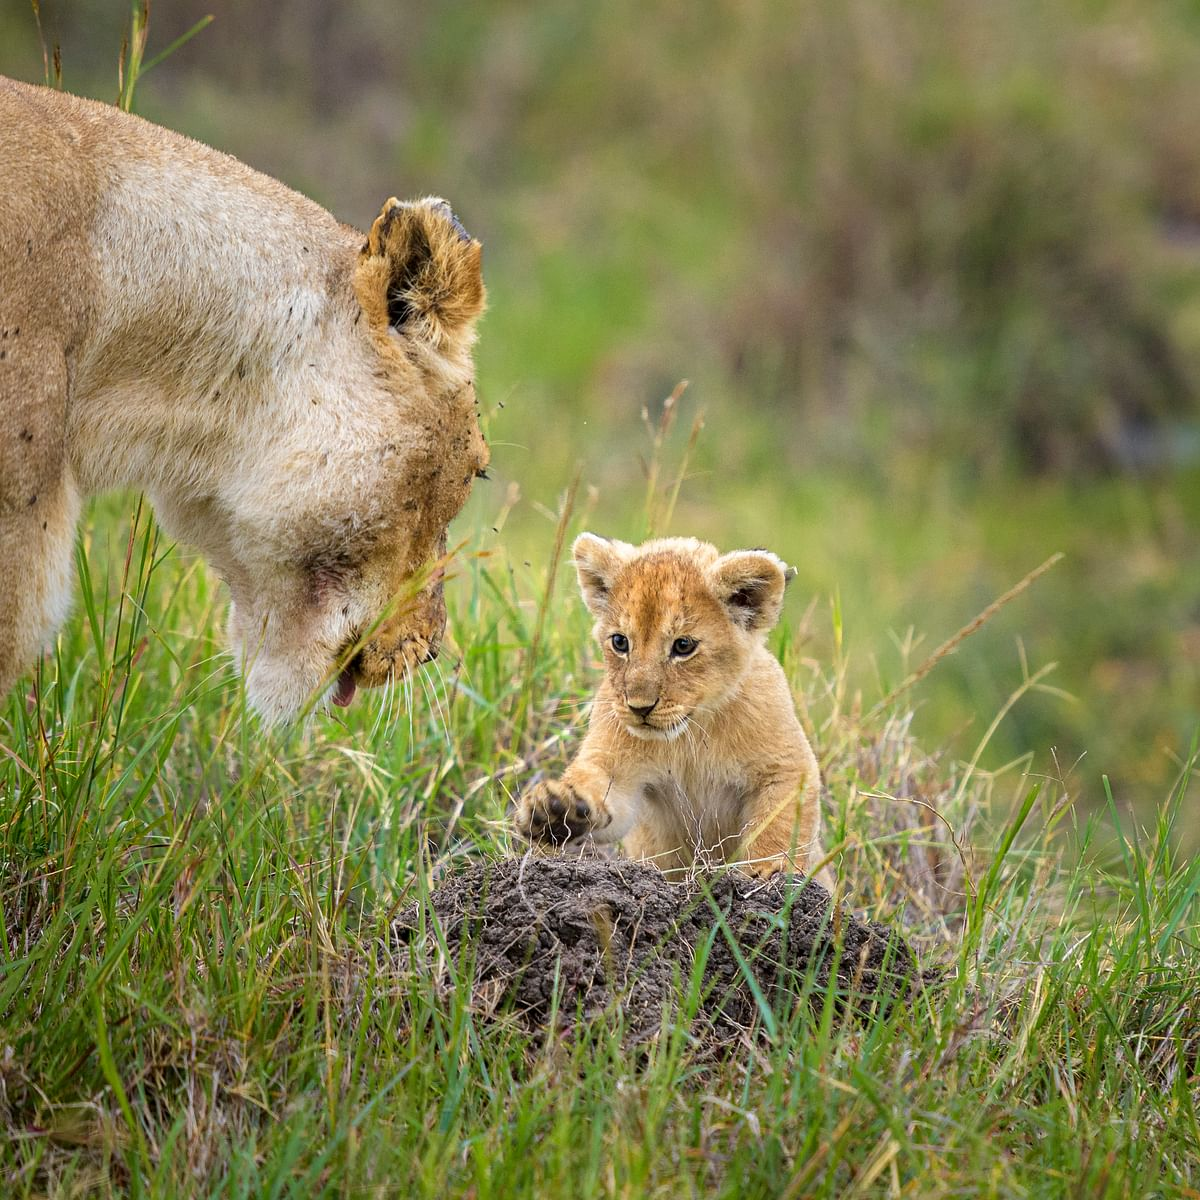 A lioness and her cub